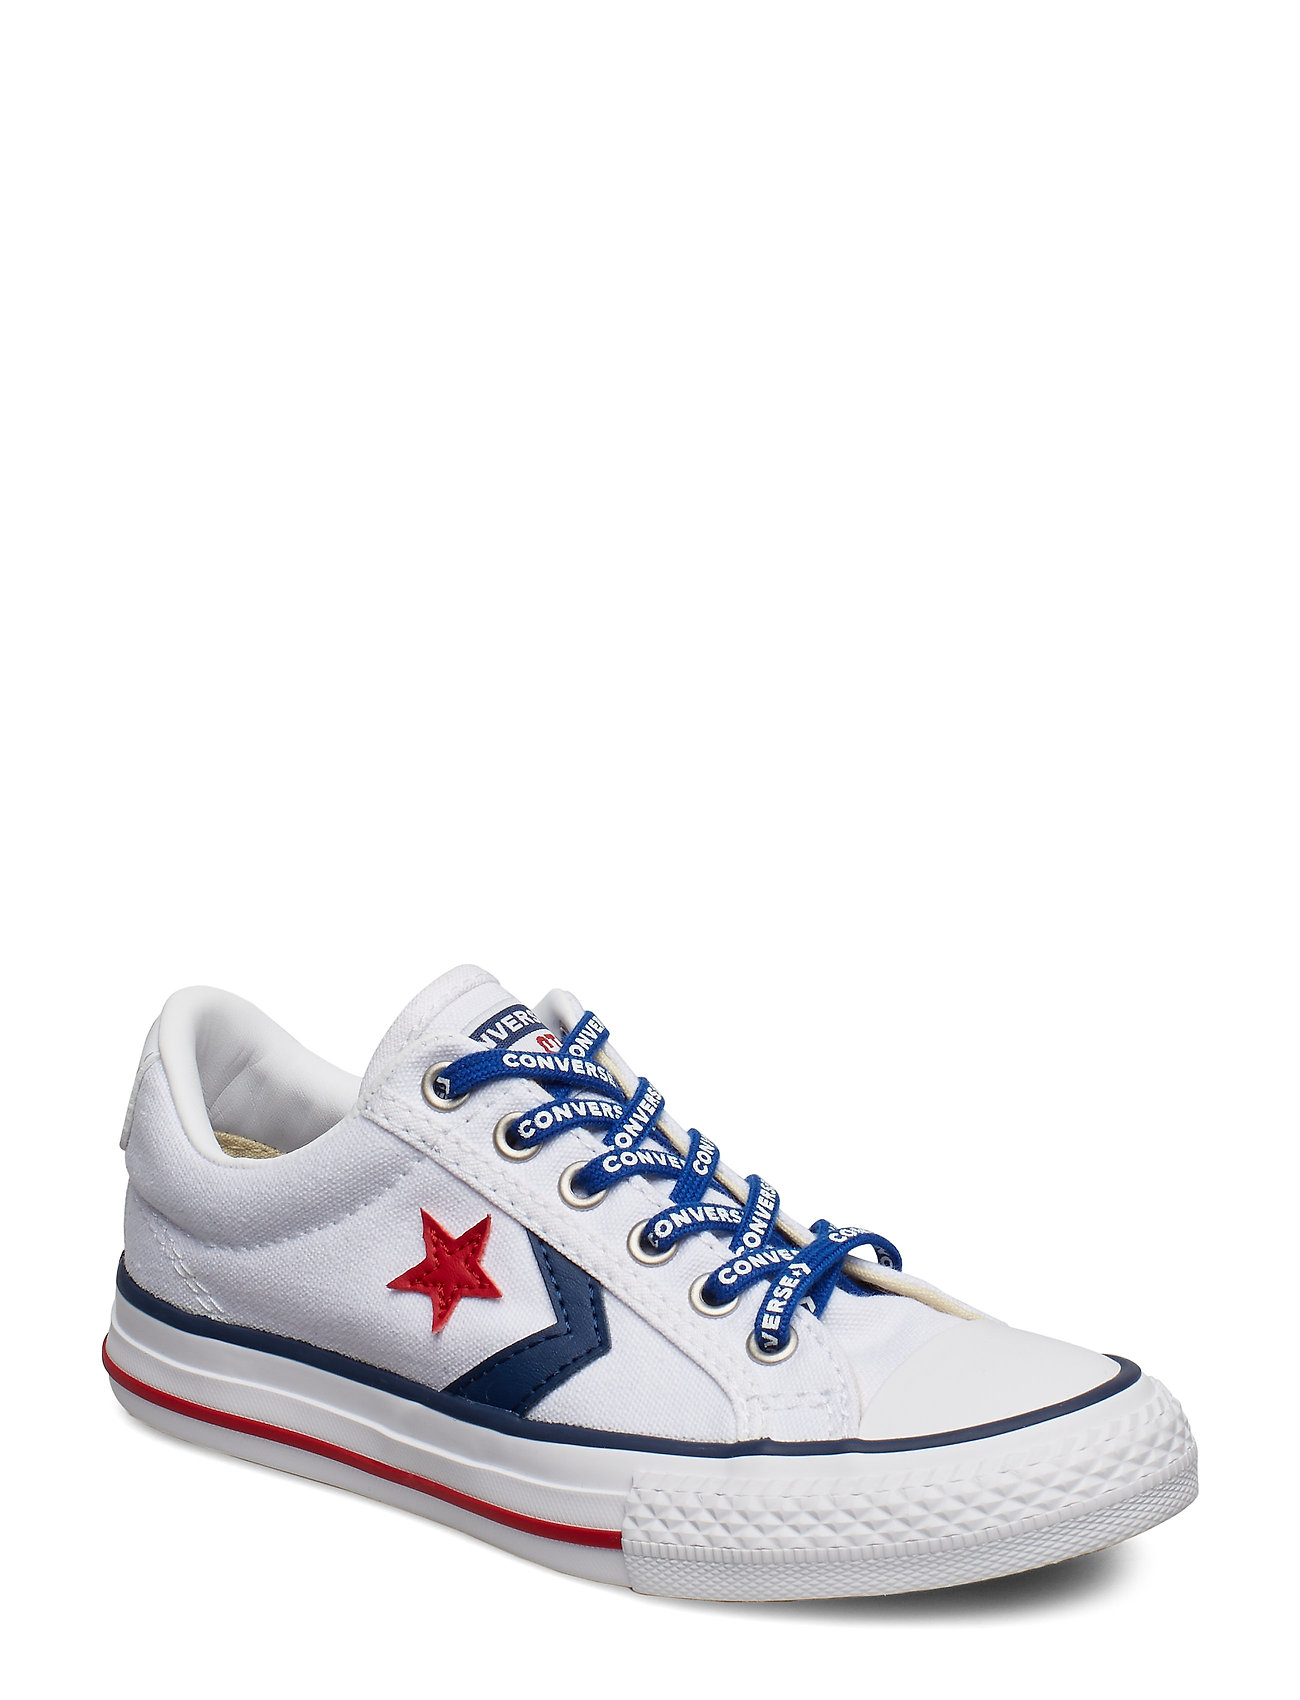 a3ee464b2ea WHITE/NAVY/GYM RED Converse Star Player Ev Ox sneakers for børn ...